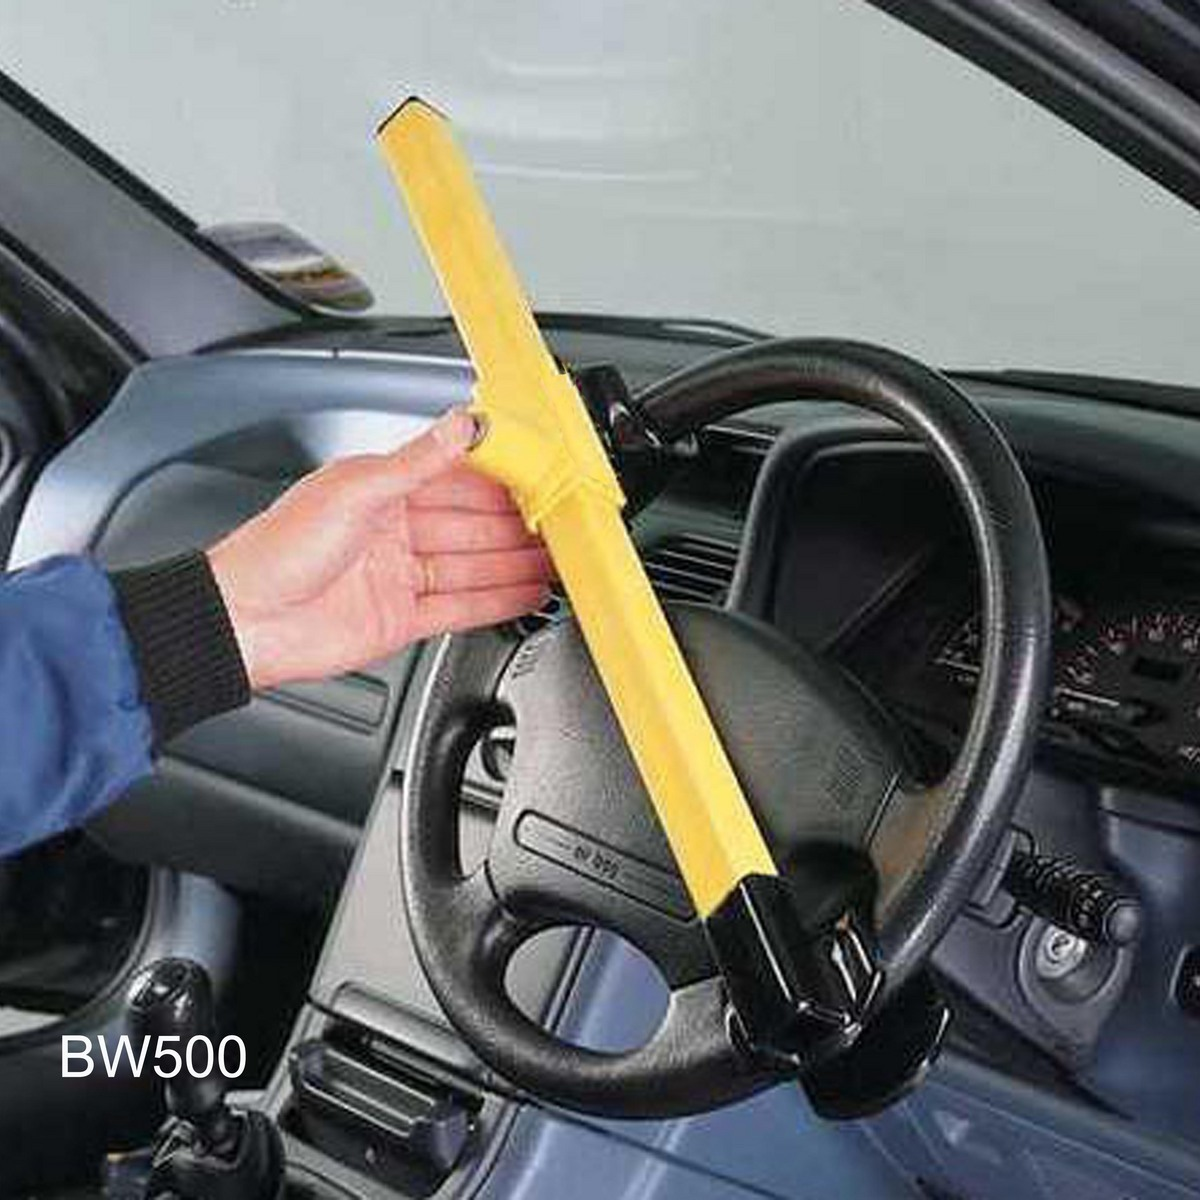 Bull bw500 steering wheel lock